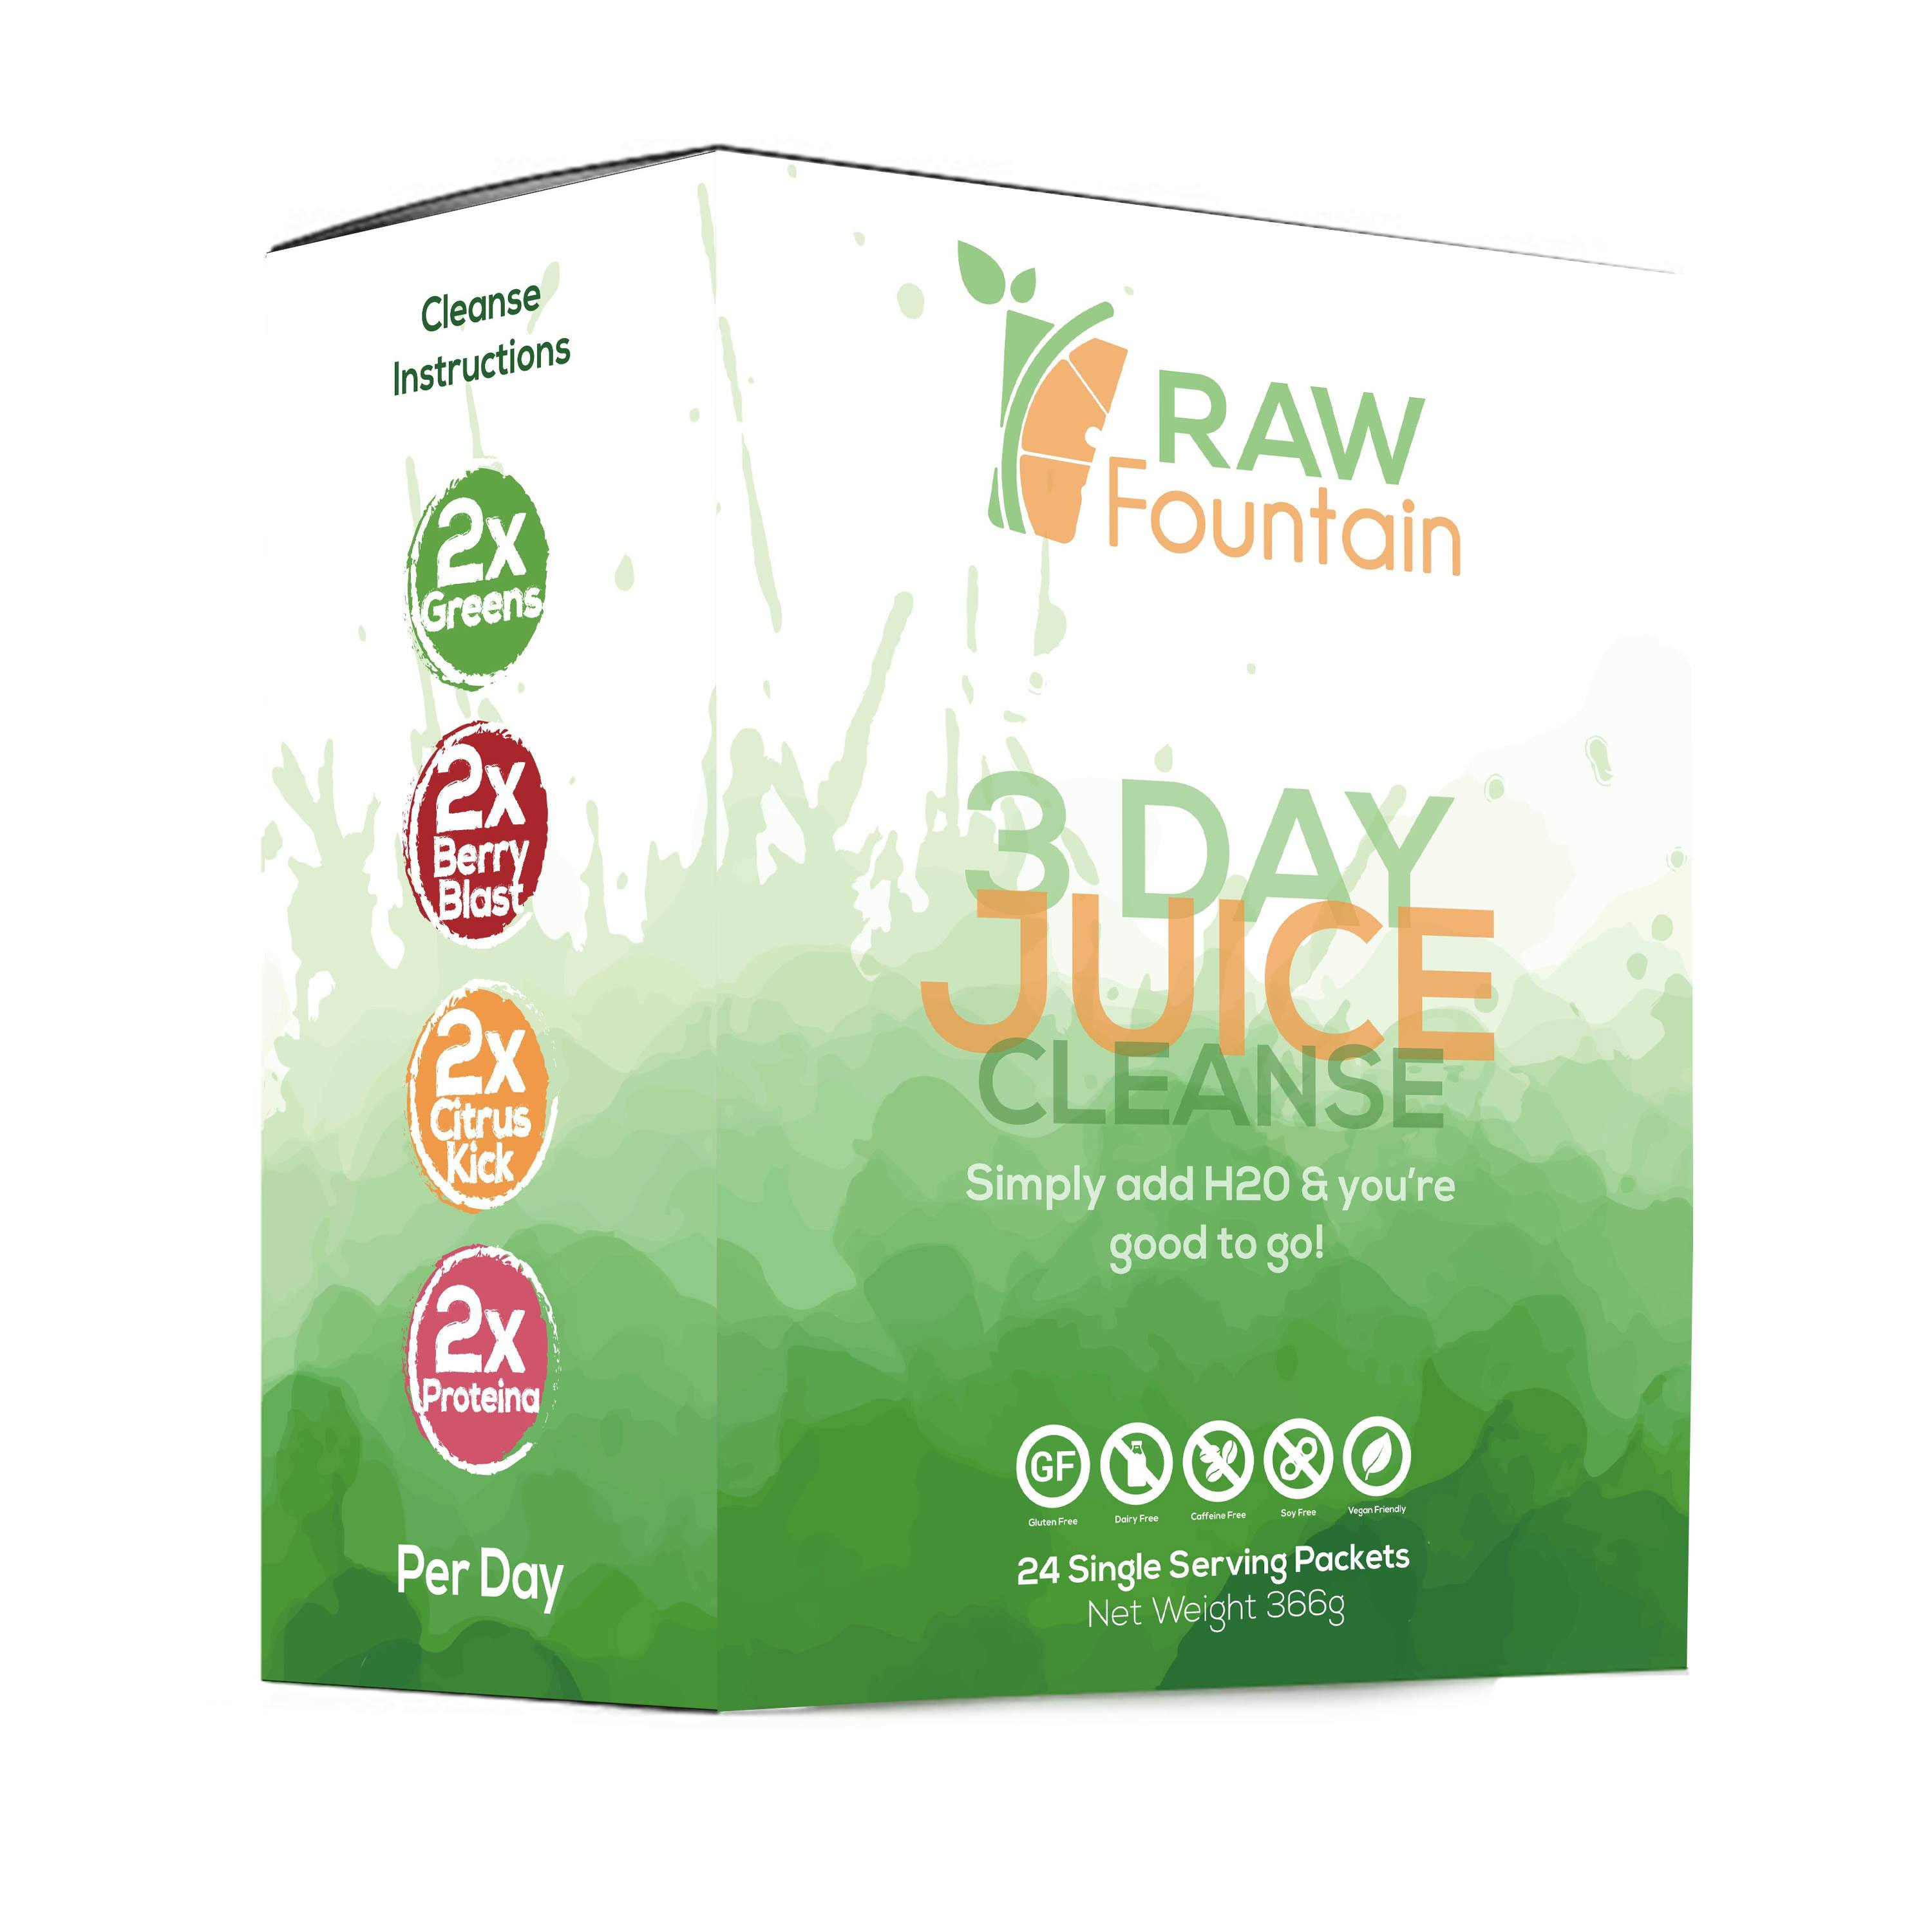 3 Day Juice Cleanse Detox 24 Single Serving Powder Packets Portable Travel Vegan Friendly Weight Loss Program All Natural Green Supplement